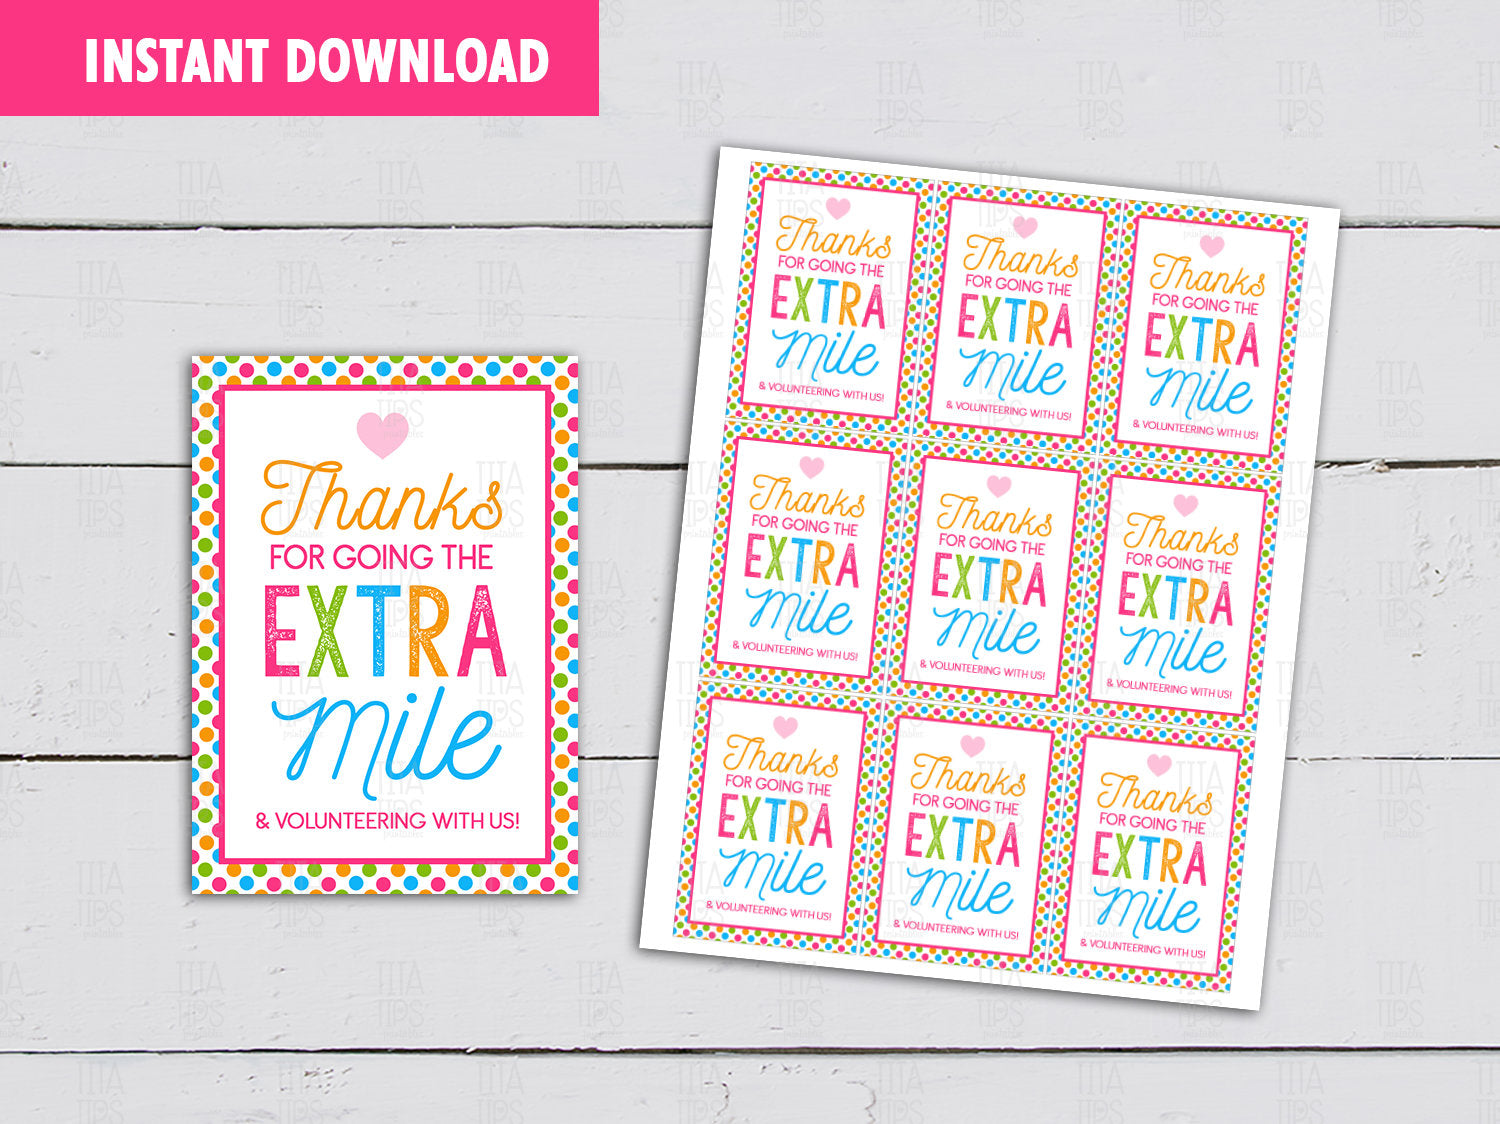 Thanks for going the EXTRA Mile Gift Tag, Volunteer Appreciation Card, Instant Download - TitaTipsPrintables